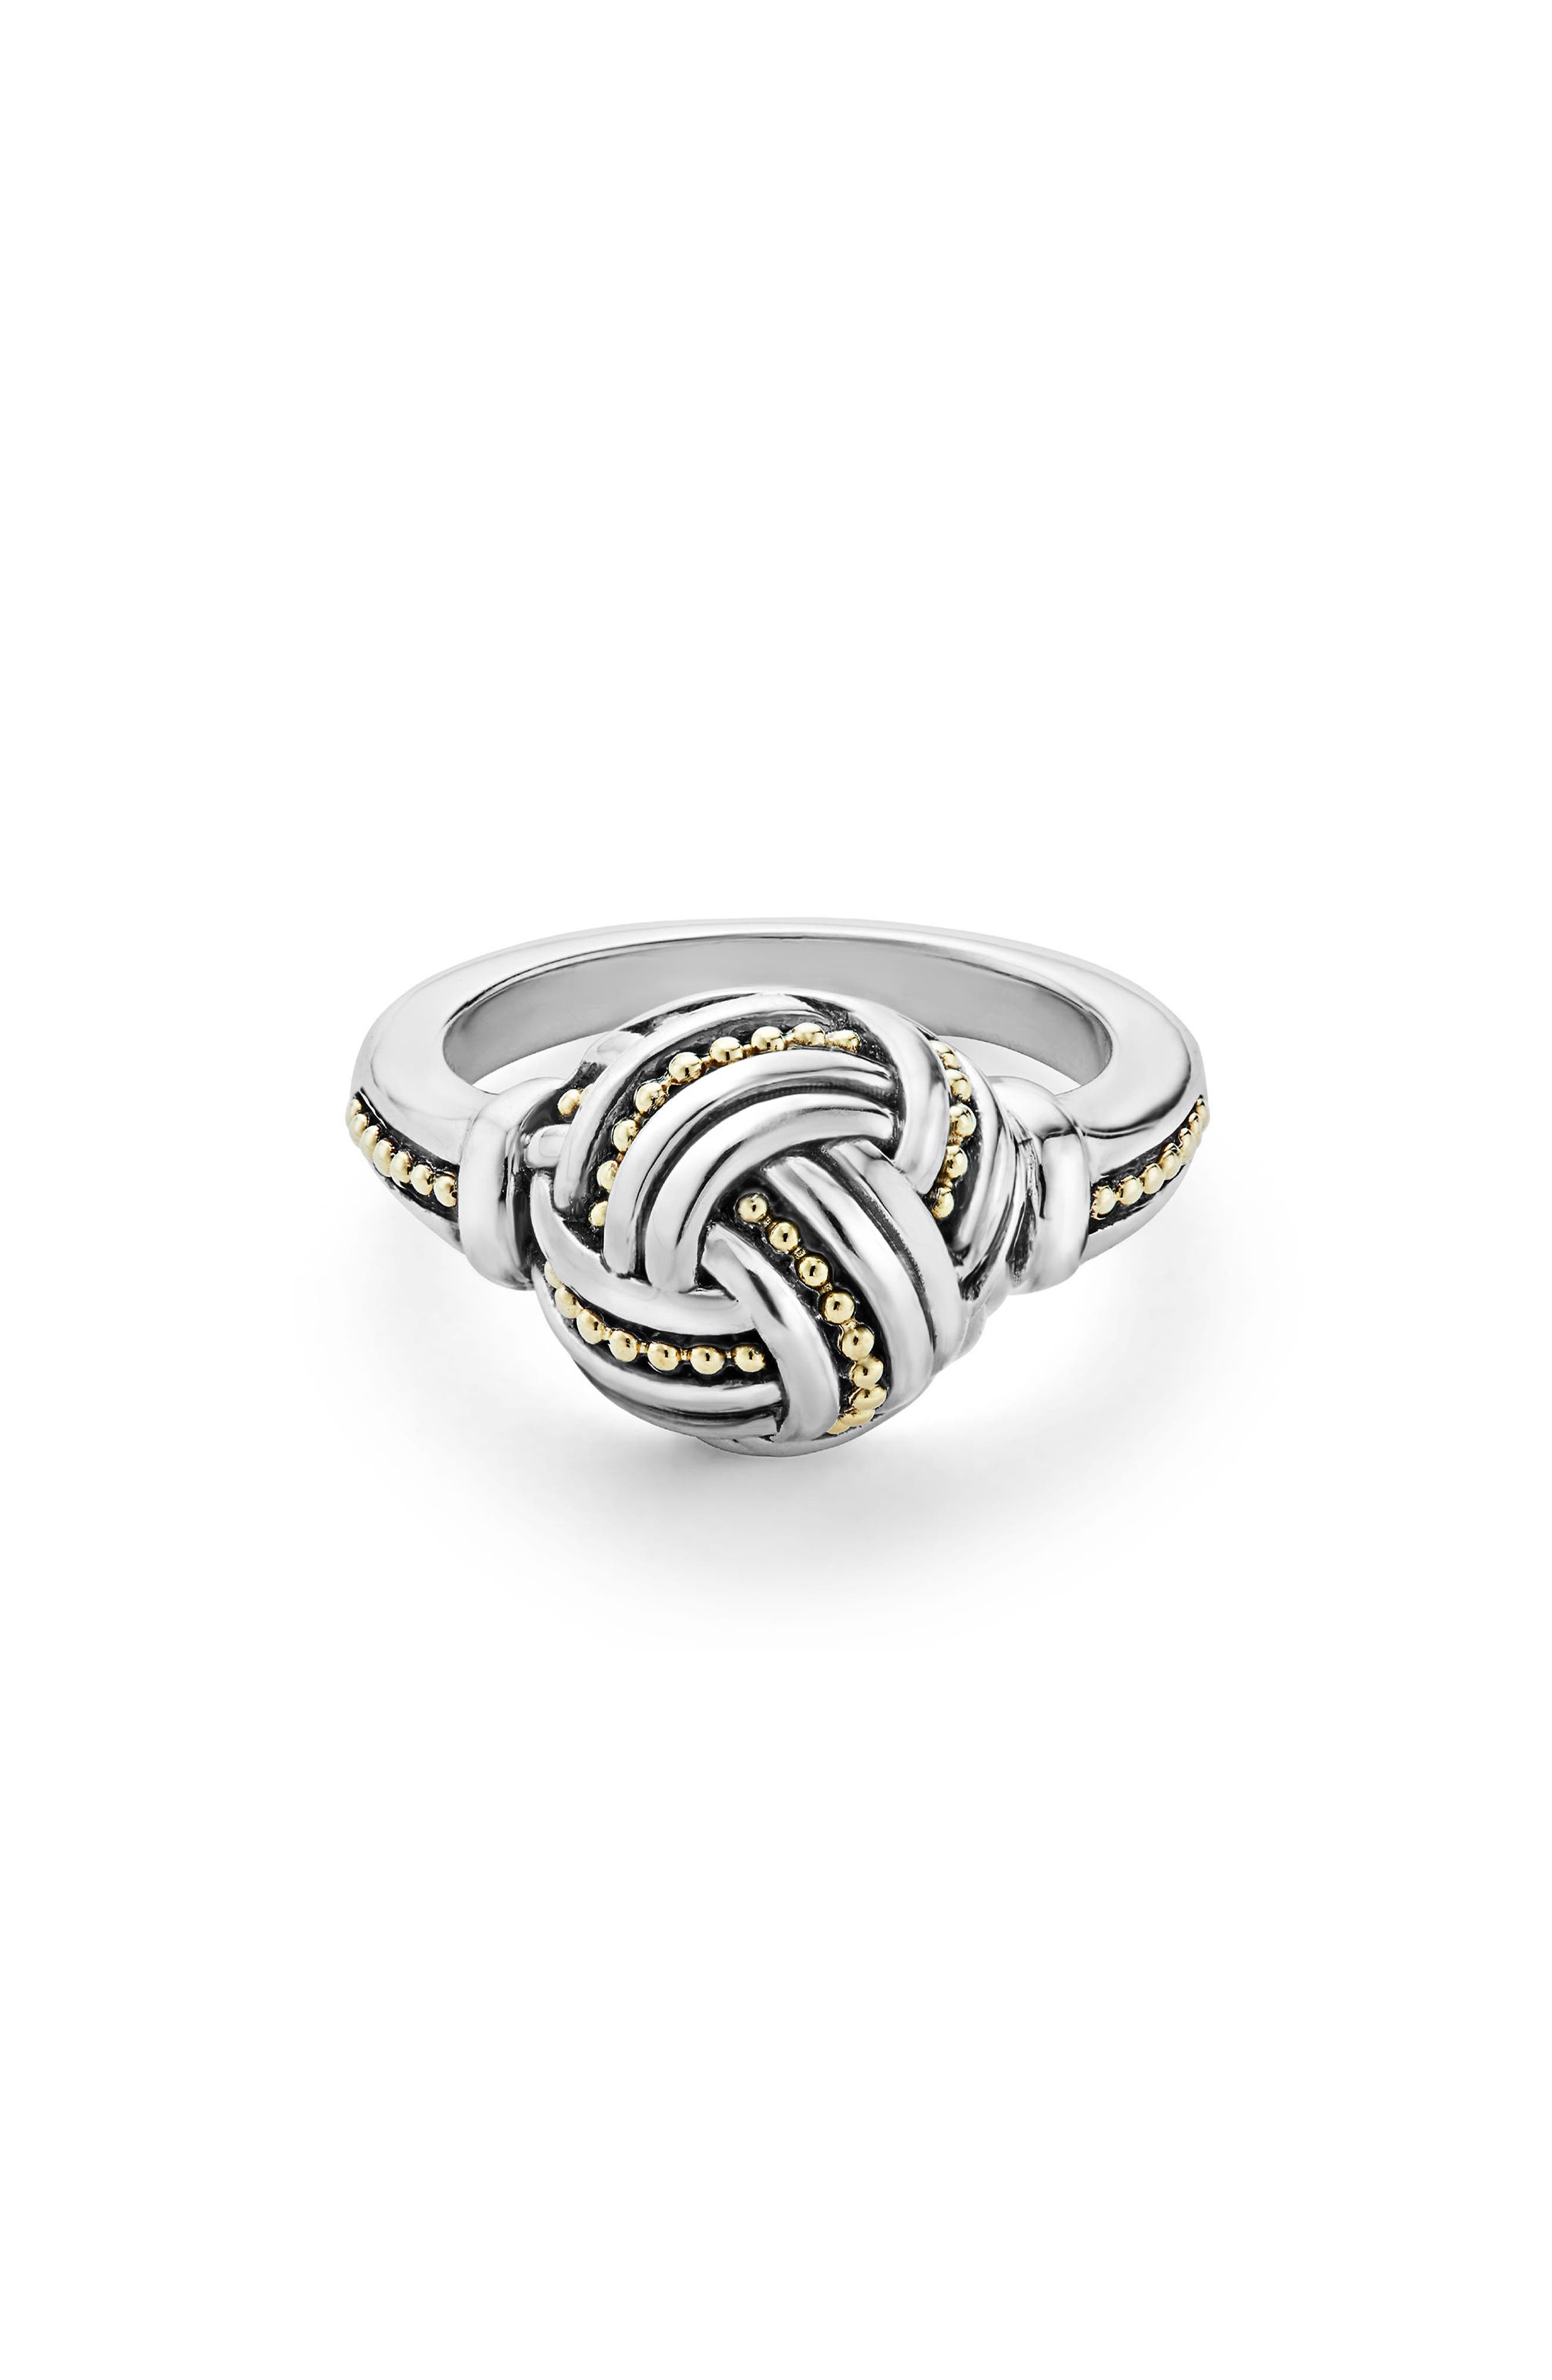 Small Round Ring,                             Alternate thumbnail 5, color,                             SILVER/ GOLD